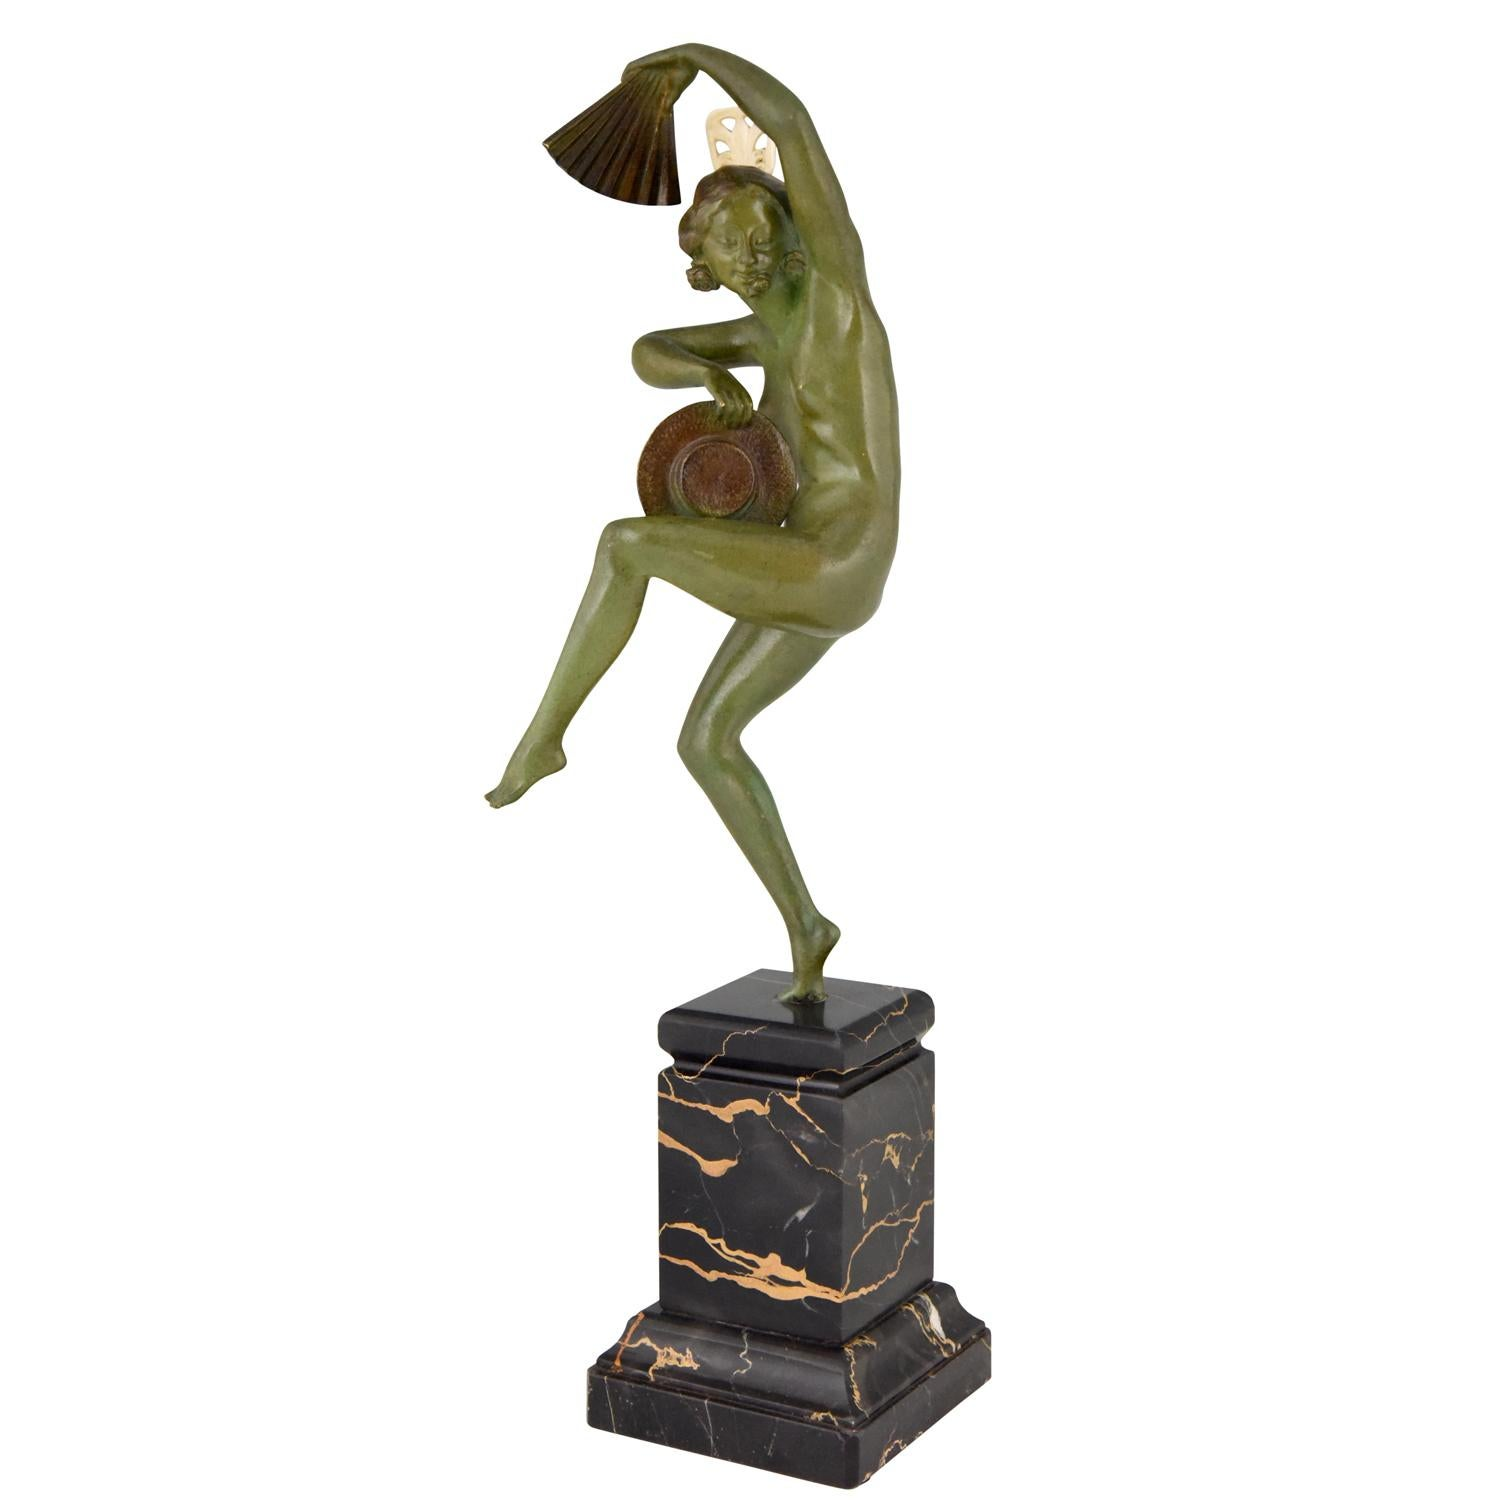 Art Nouveau Bronze Sculpture of a Dancing Nude by Joseph Zomers, 1915 For  Sale at 1stdibs